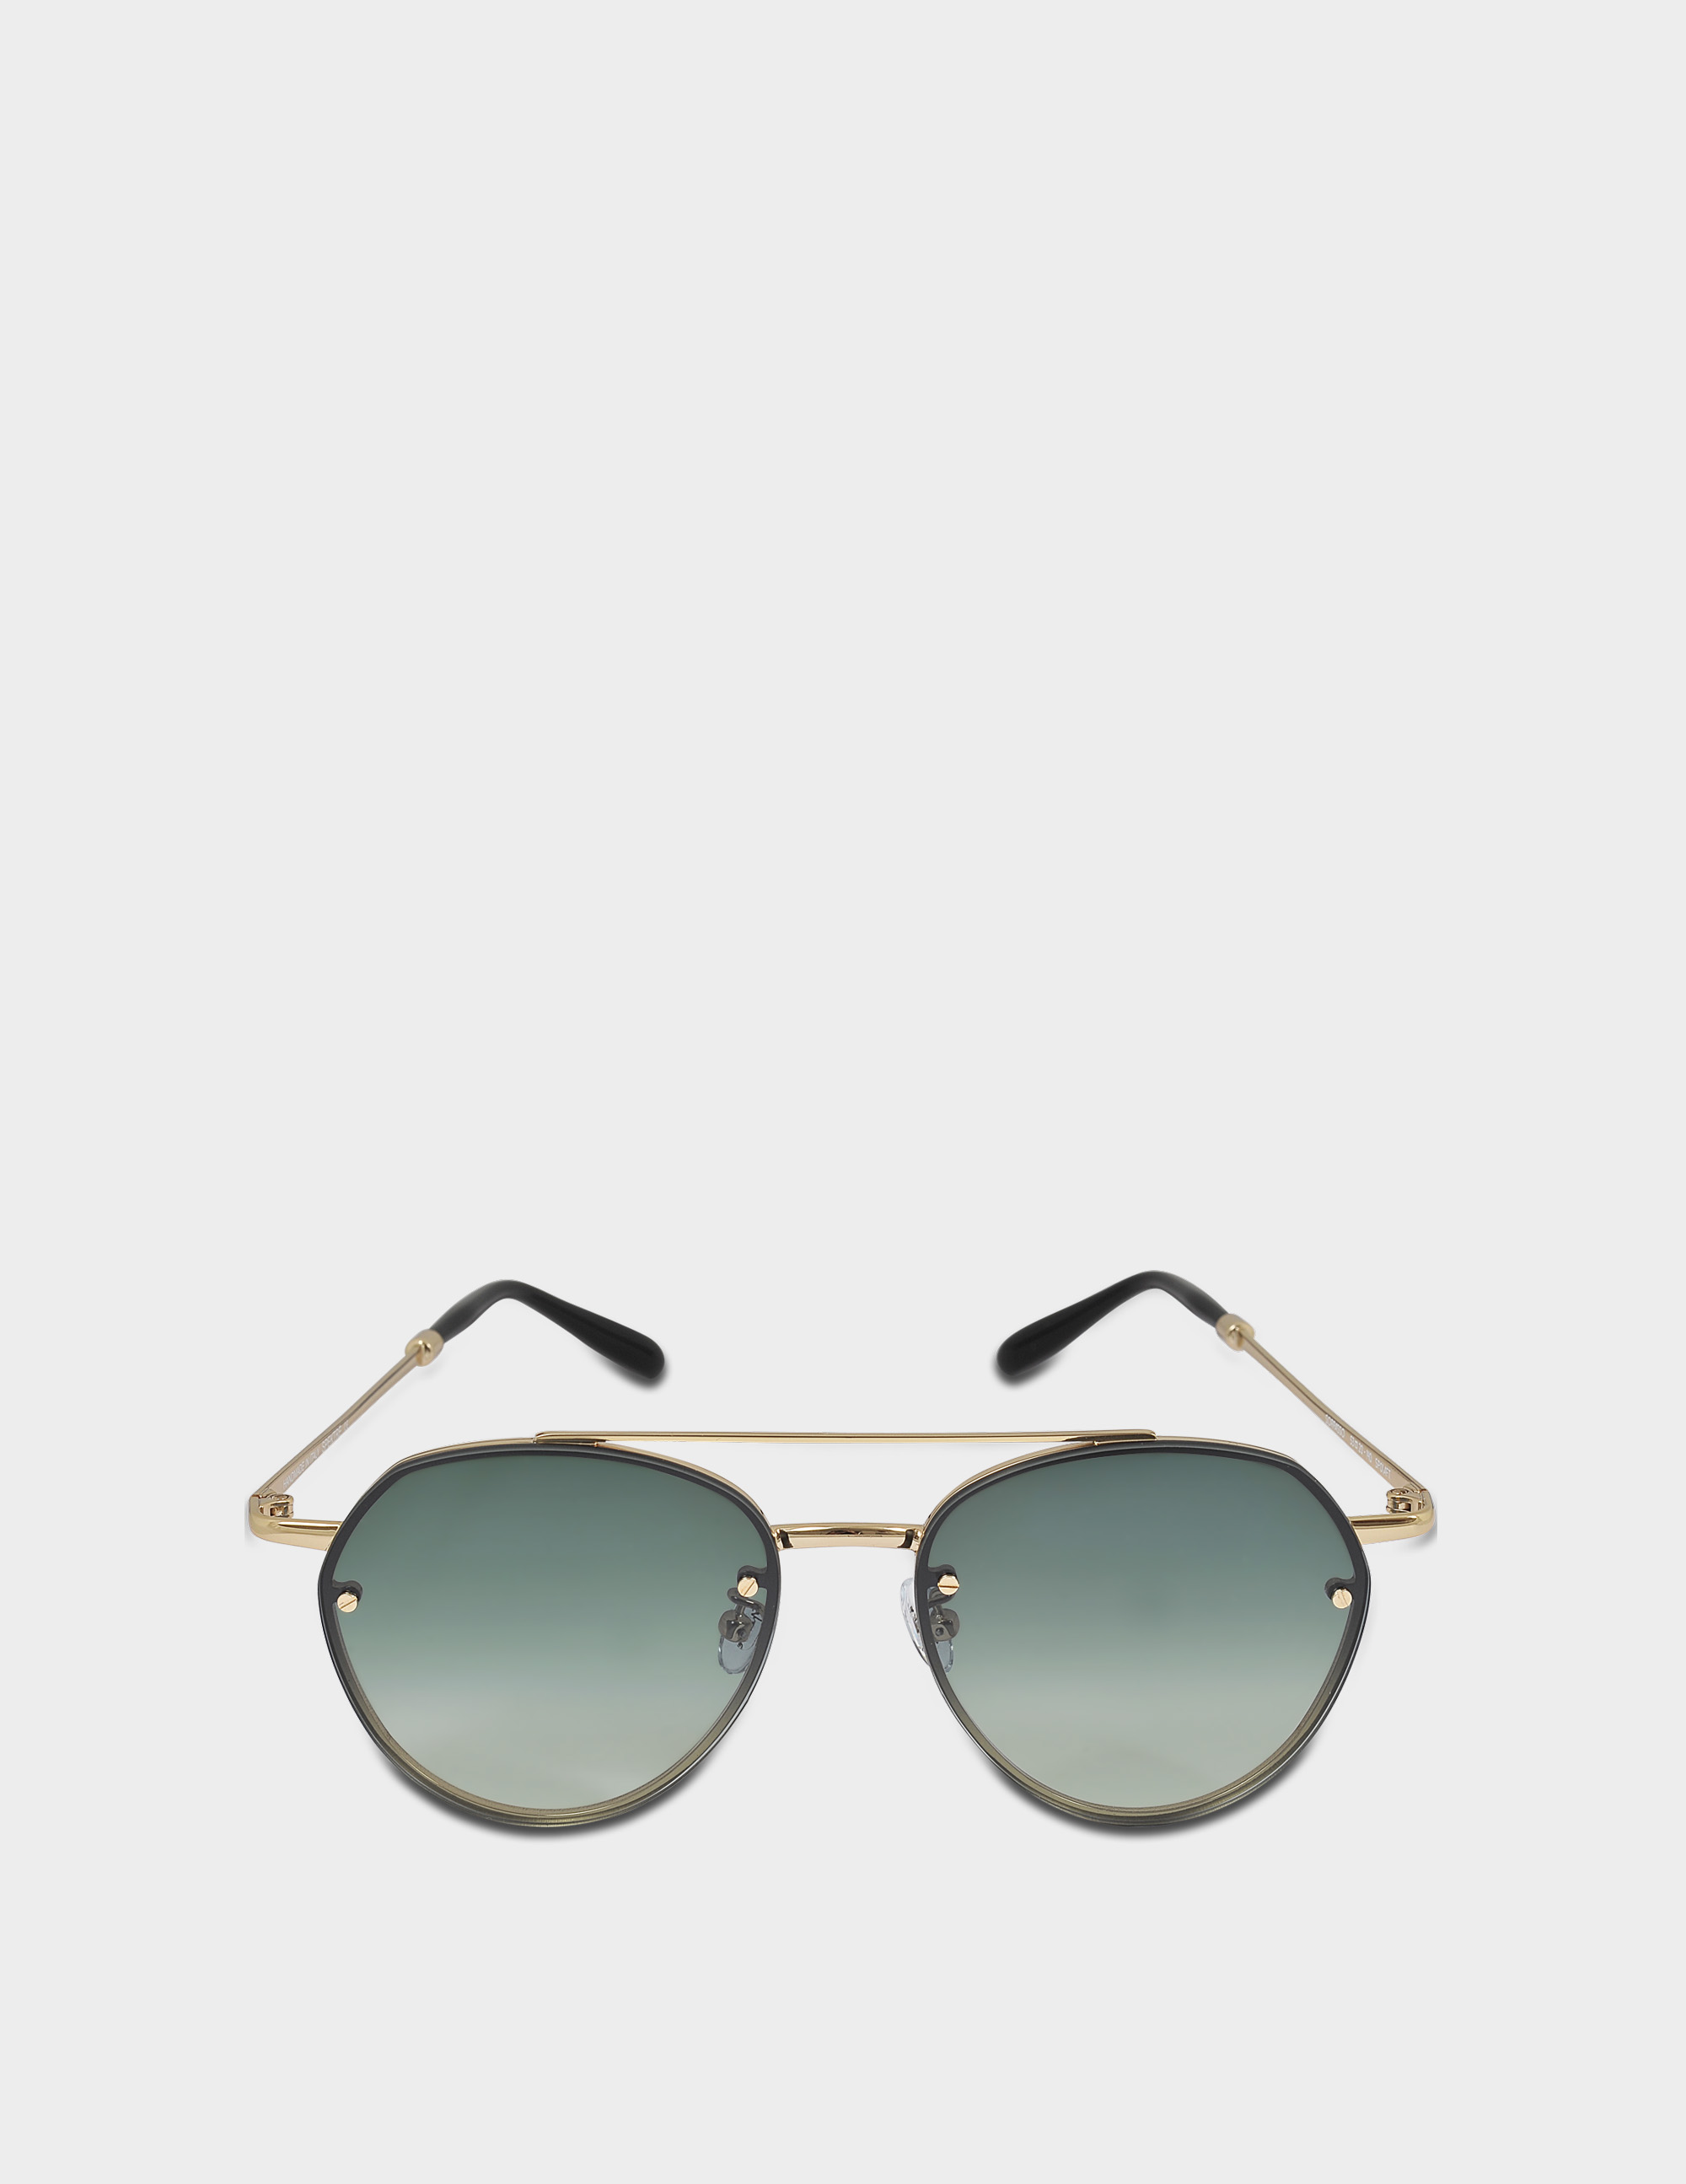 SPEKTRE SORPASSO SUNGLASSES IN GOLD GLOSSY AND GRADIENT GREEN STAINLESS STEEL